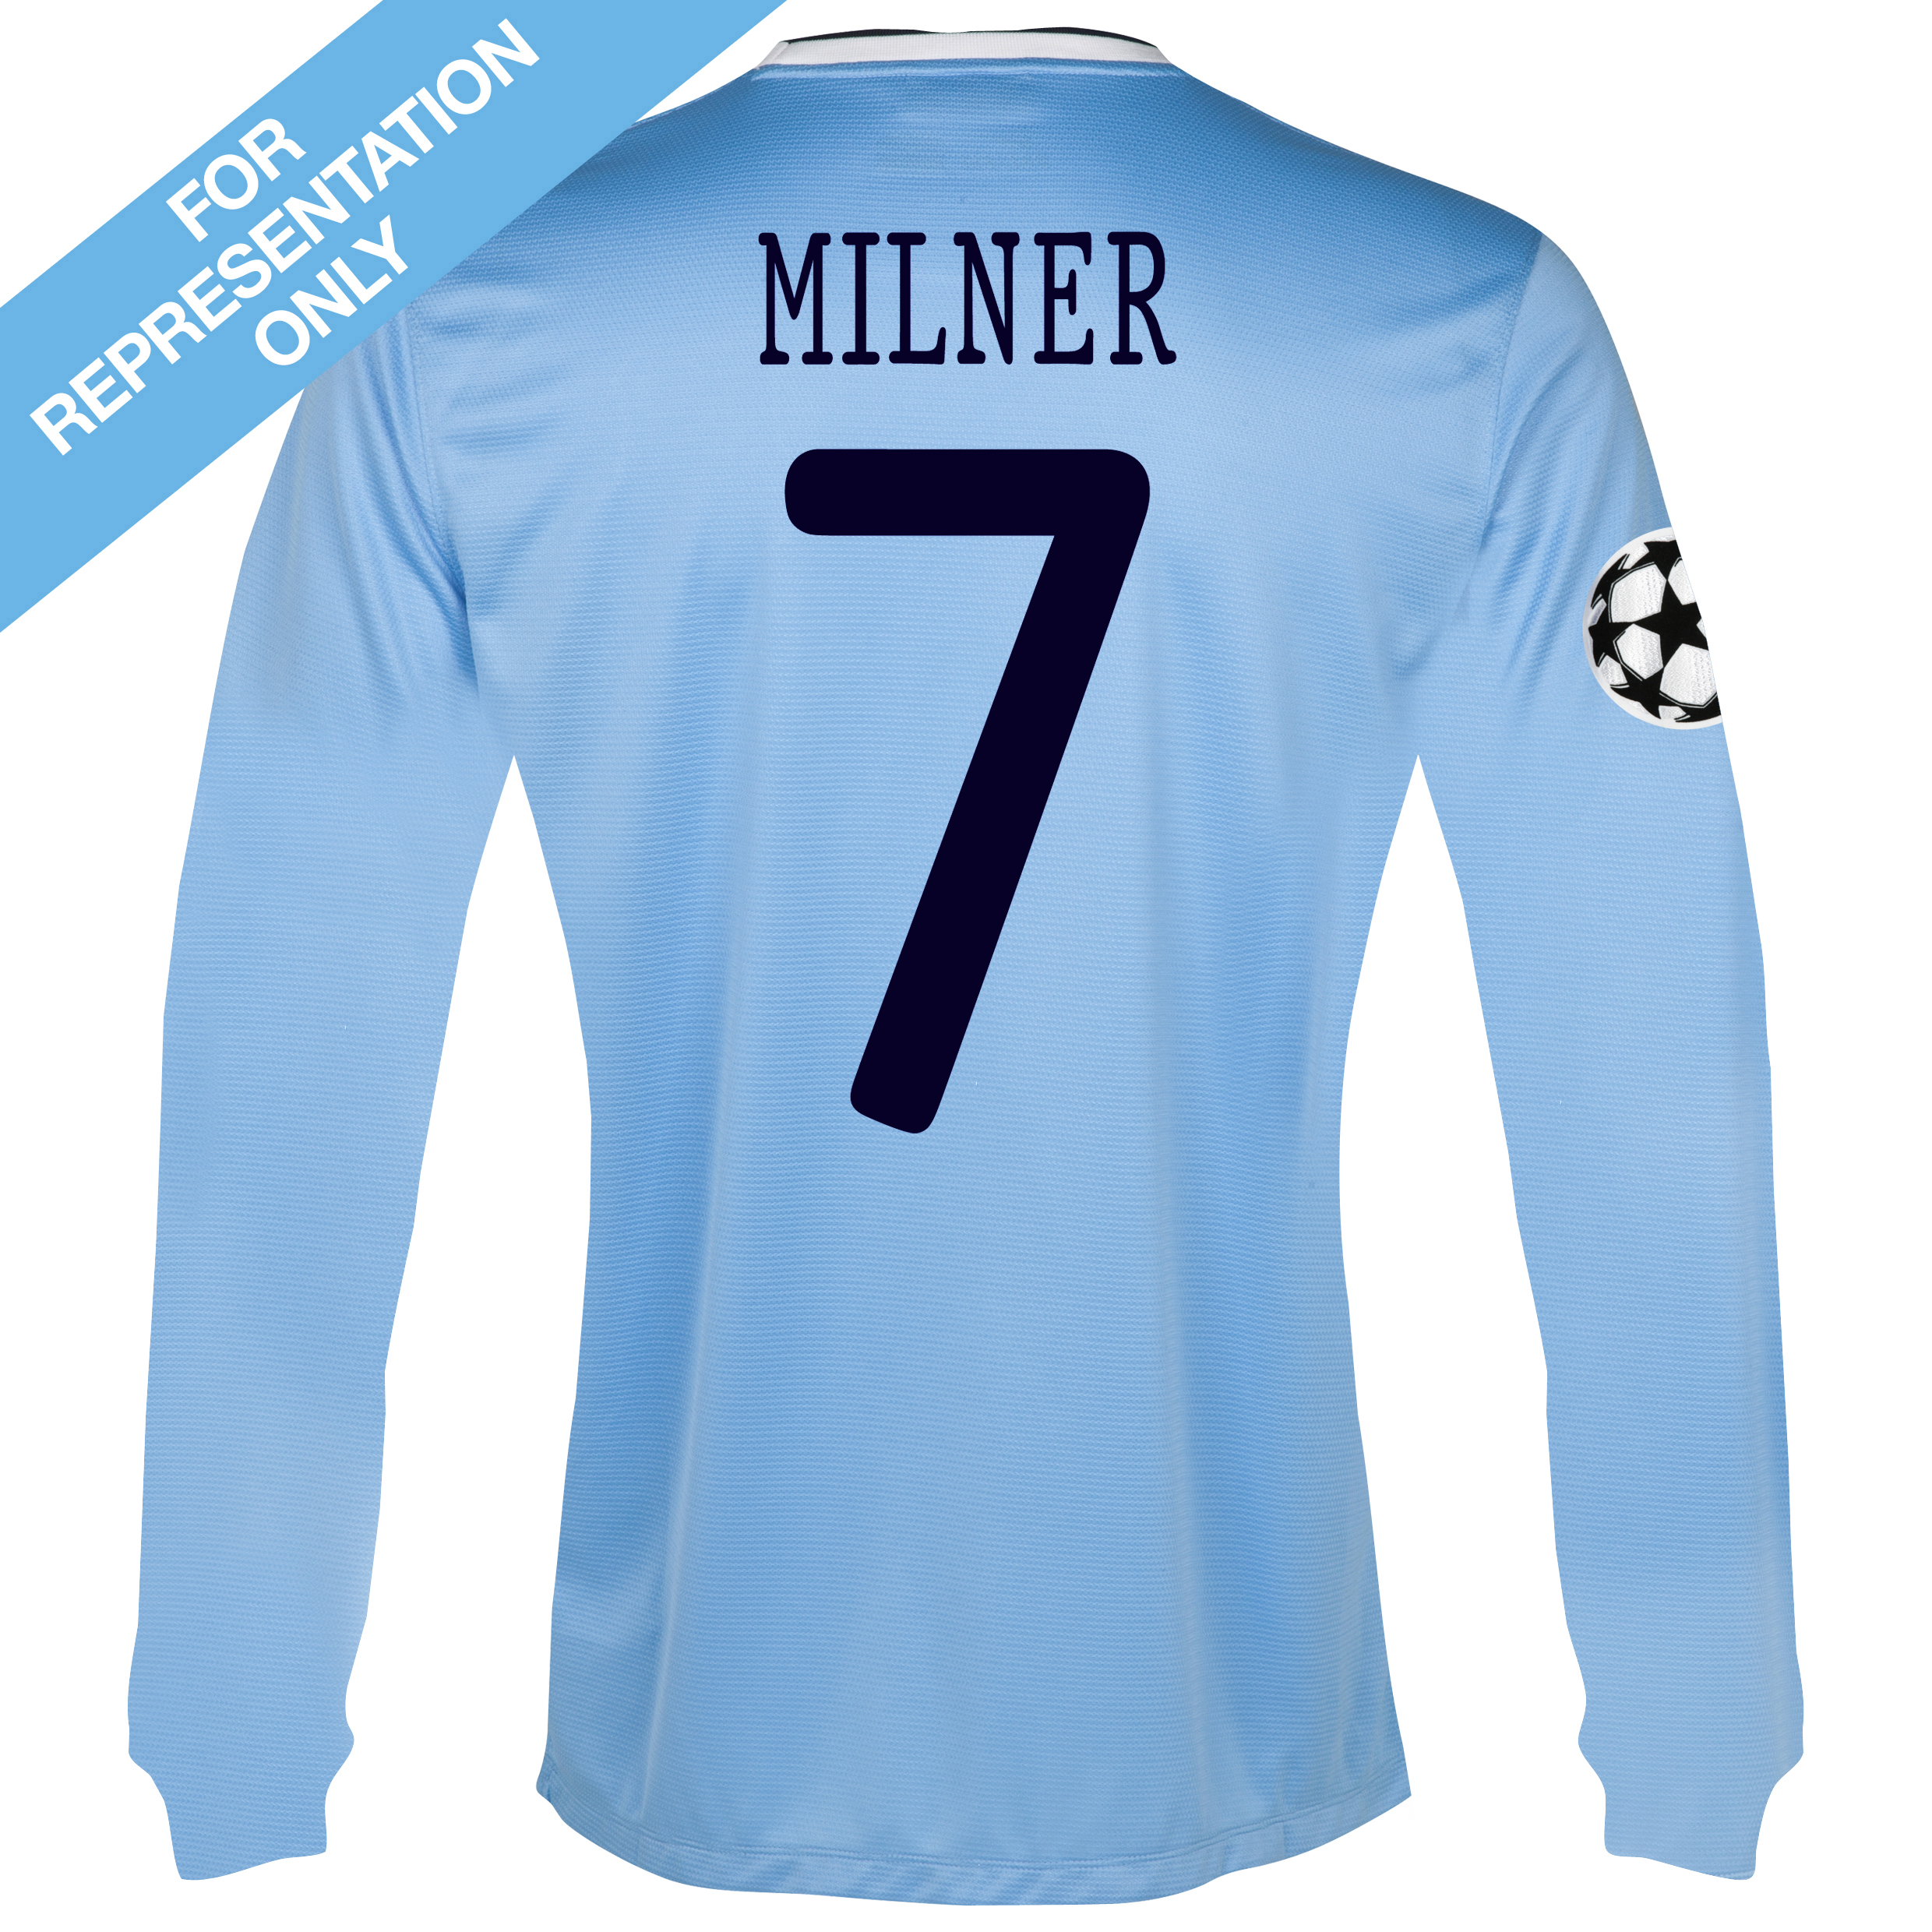 Manchester City UEFA Champions League Home Shirt 2013/14 - Long Sleeved - Junior with Milner 7 printing